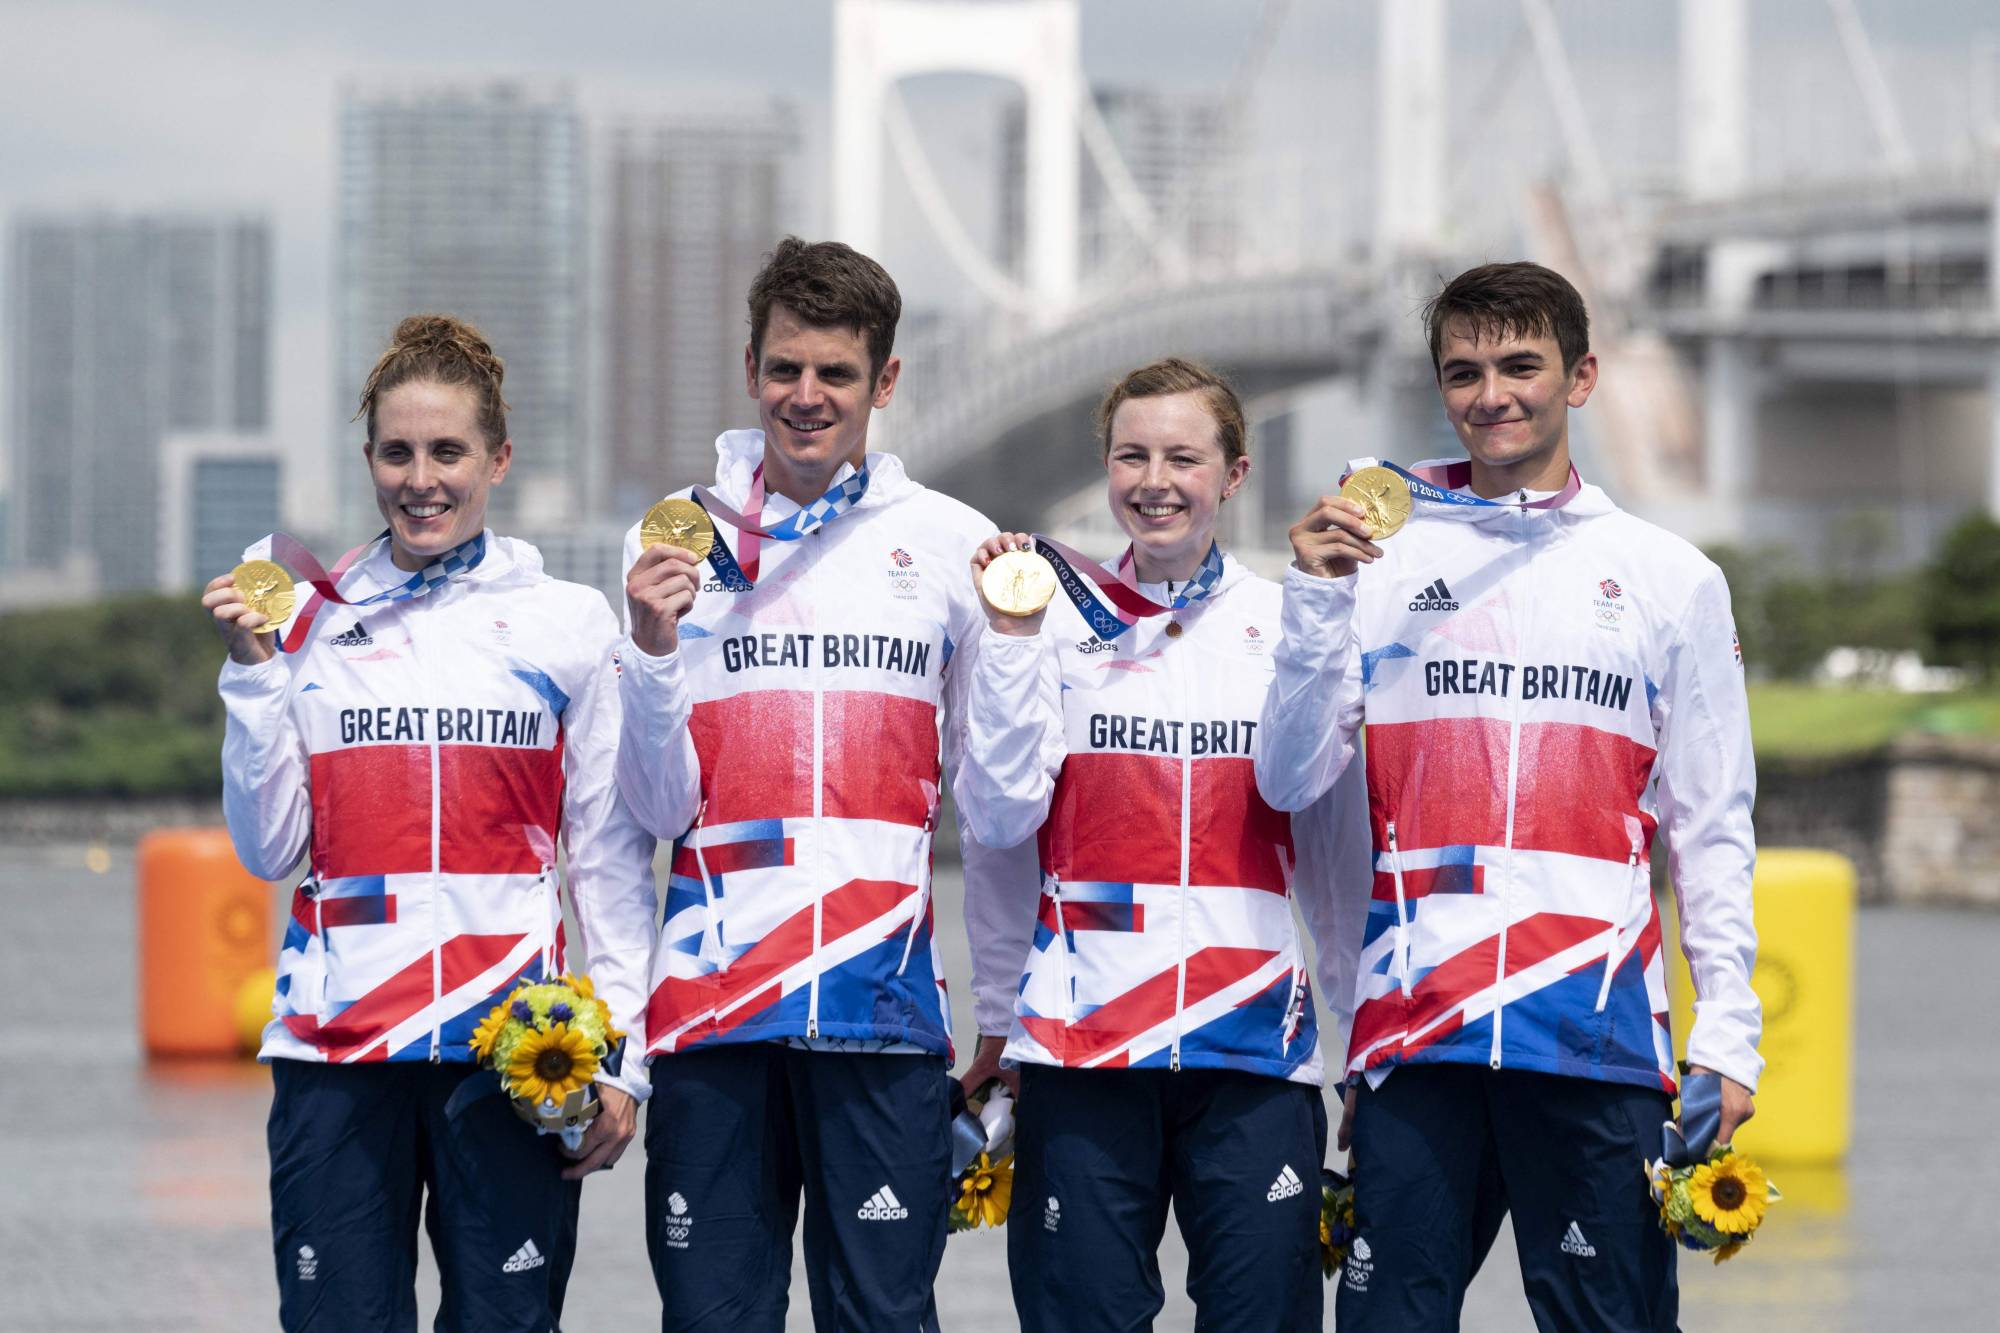 Britain's Alex Yee (left to right), Georgia Taylor-Brown Jessica Learmonth and Jonathan Brownlee pose on the podium during an Olympic medal ceremony after competing in the mixed-relay triathlon competition at Odaiba Marine Park in Tokyo on Saturday. | AFP-JIJI